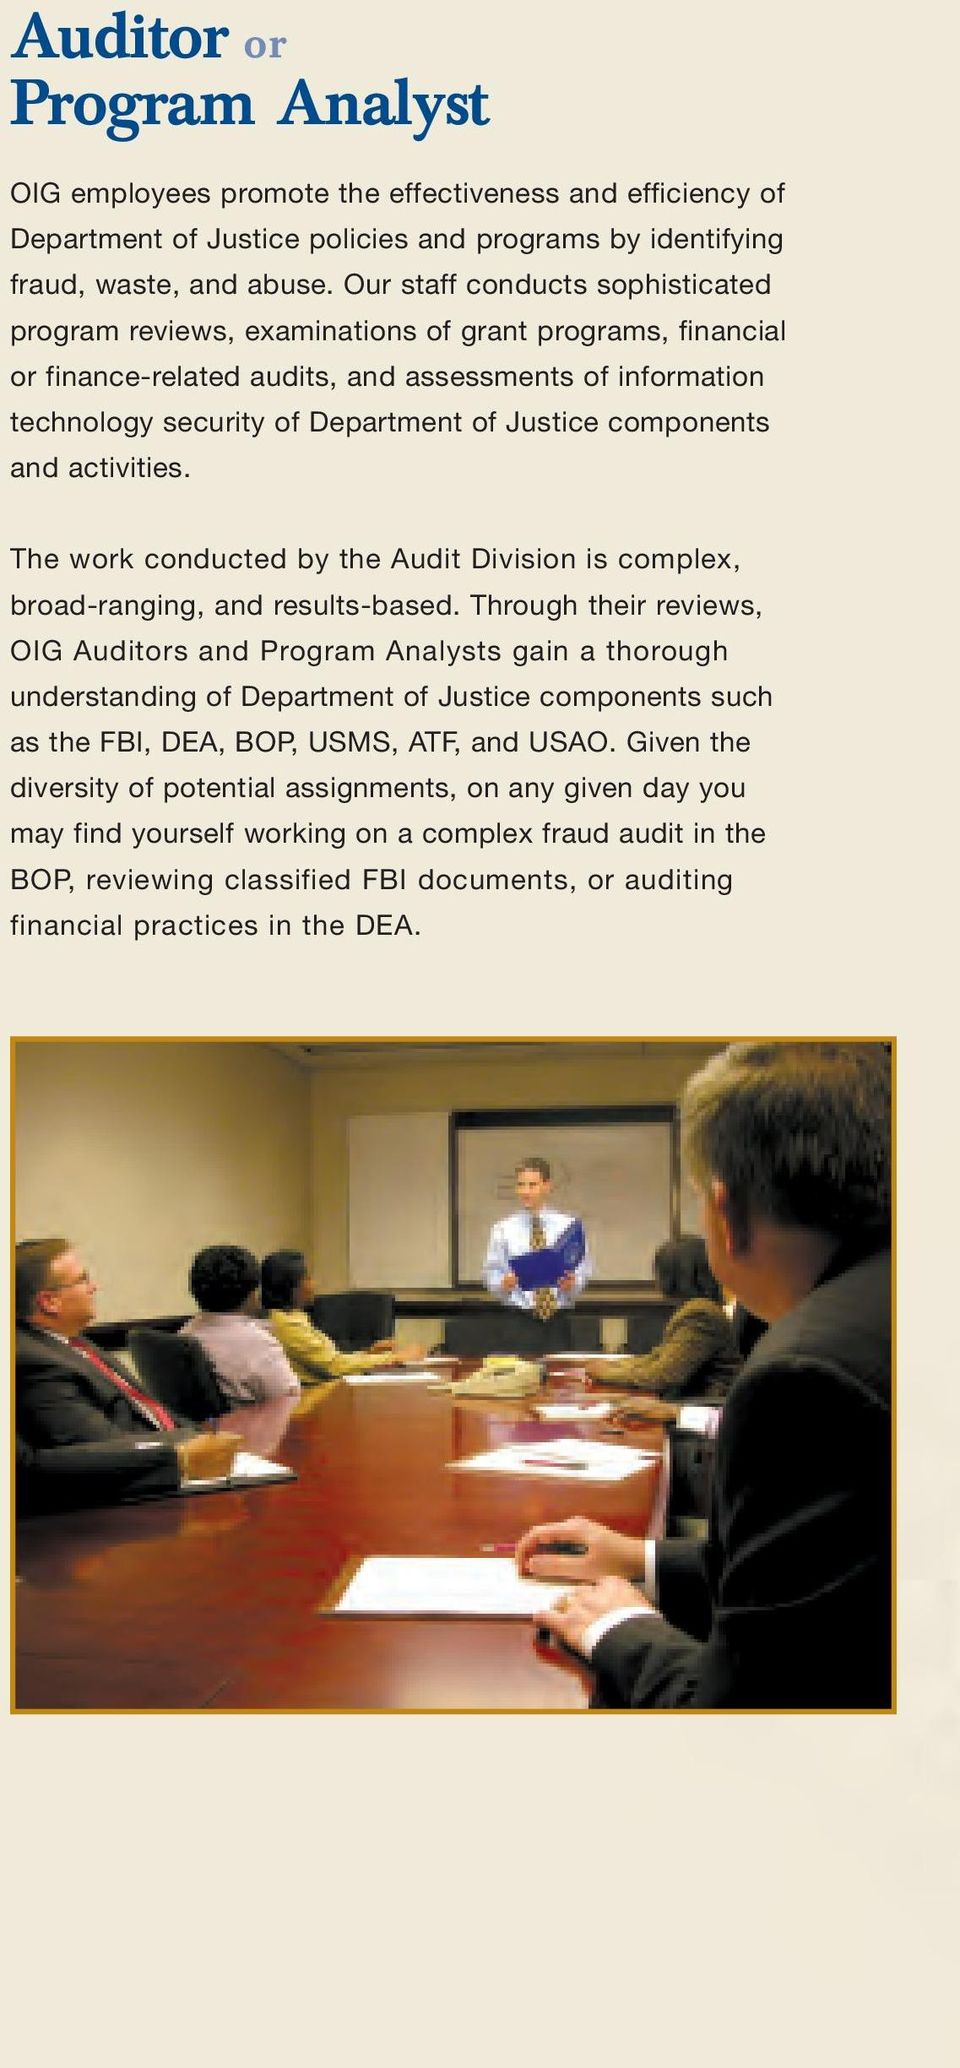 components and activities. The work conducted by the Audit Division is complex, broad-ranging, and results-based.